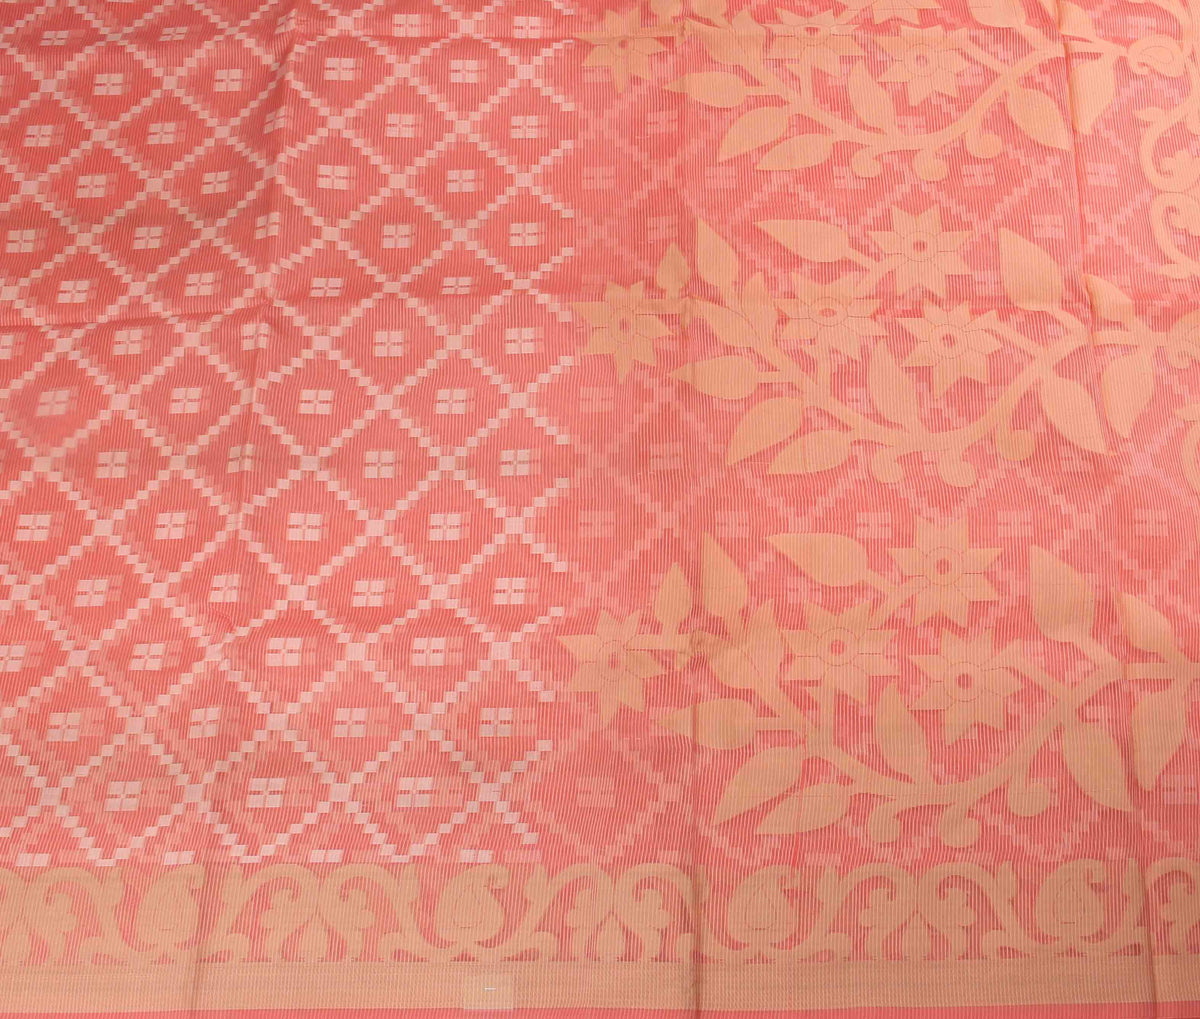 Peach Cotton Supernet Banarasi Saree with grid pattern (2) flat